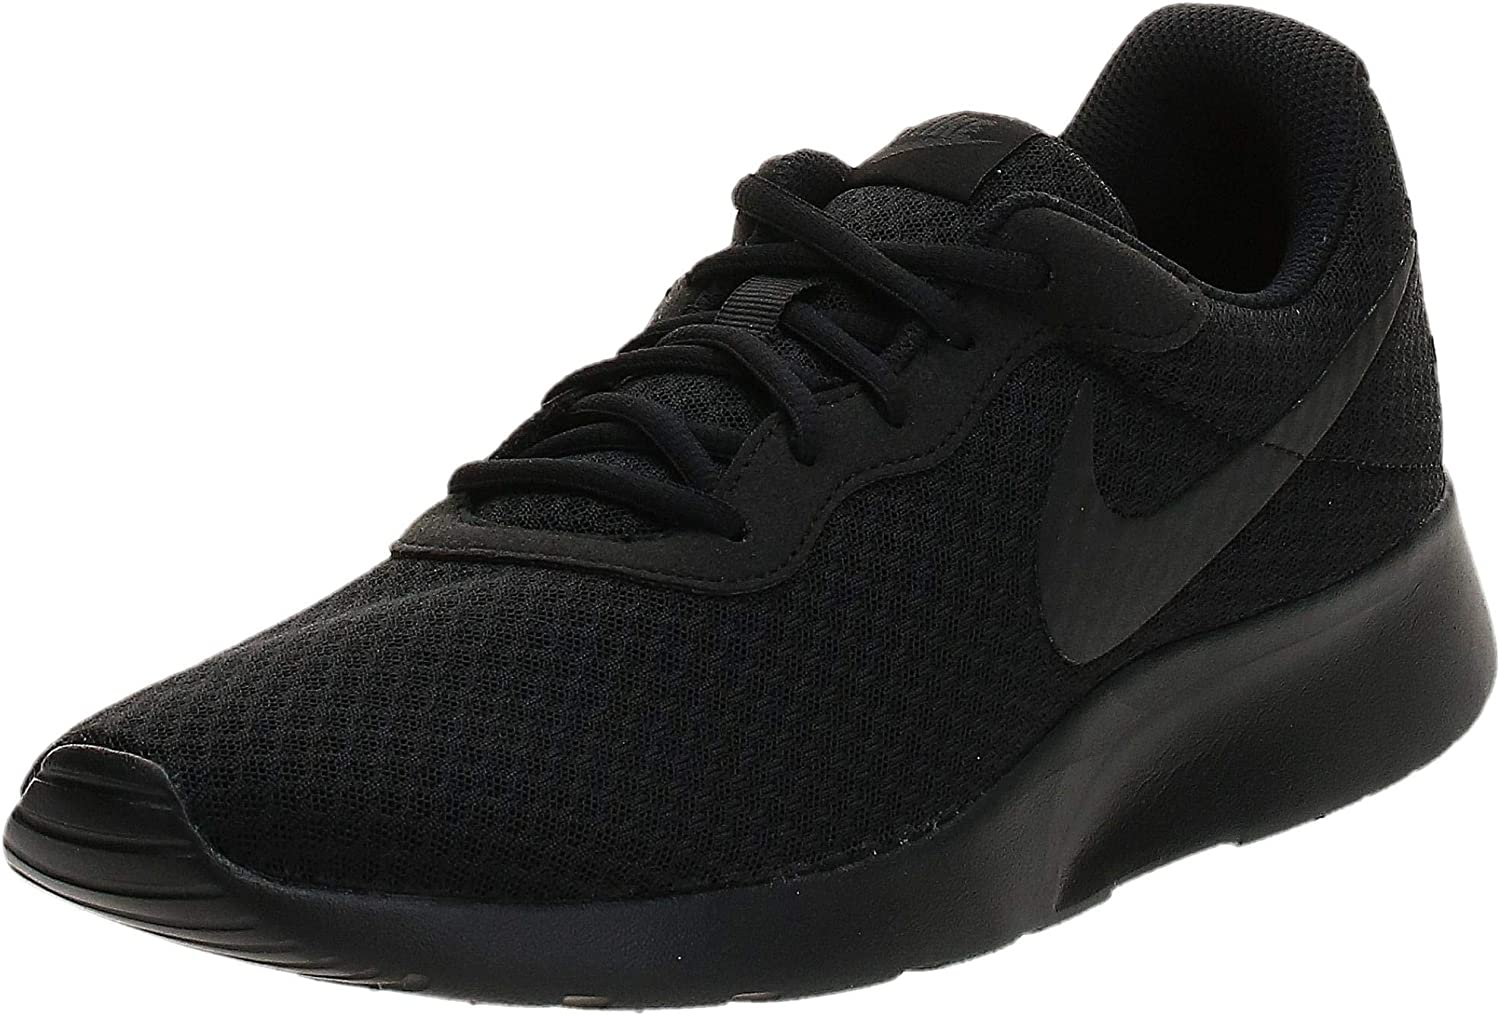 | NIKE Men's Tanjun Sneakers, Breathable Textile Uppers and Comfortable Lightweight Cushioning | Road Running